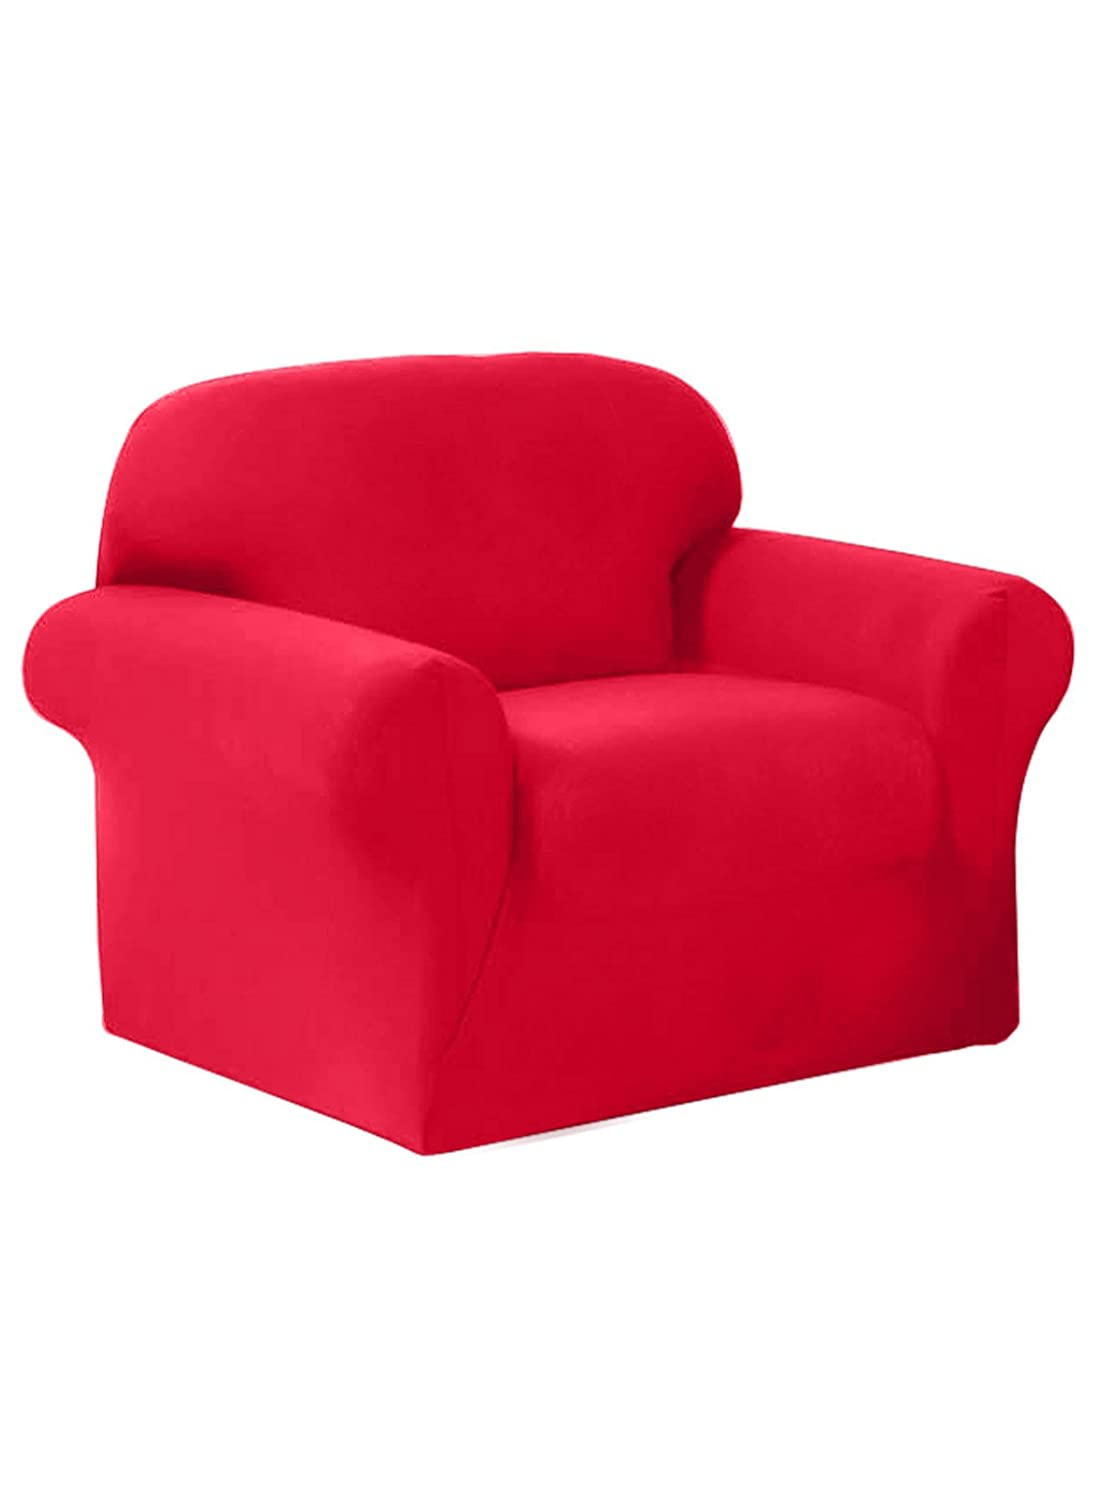 Madison Stretch Jersey Red Loveseat Slipcover, Solid MADISON INDUSTRIES INC. us home MBPT0